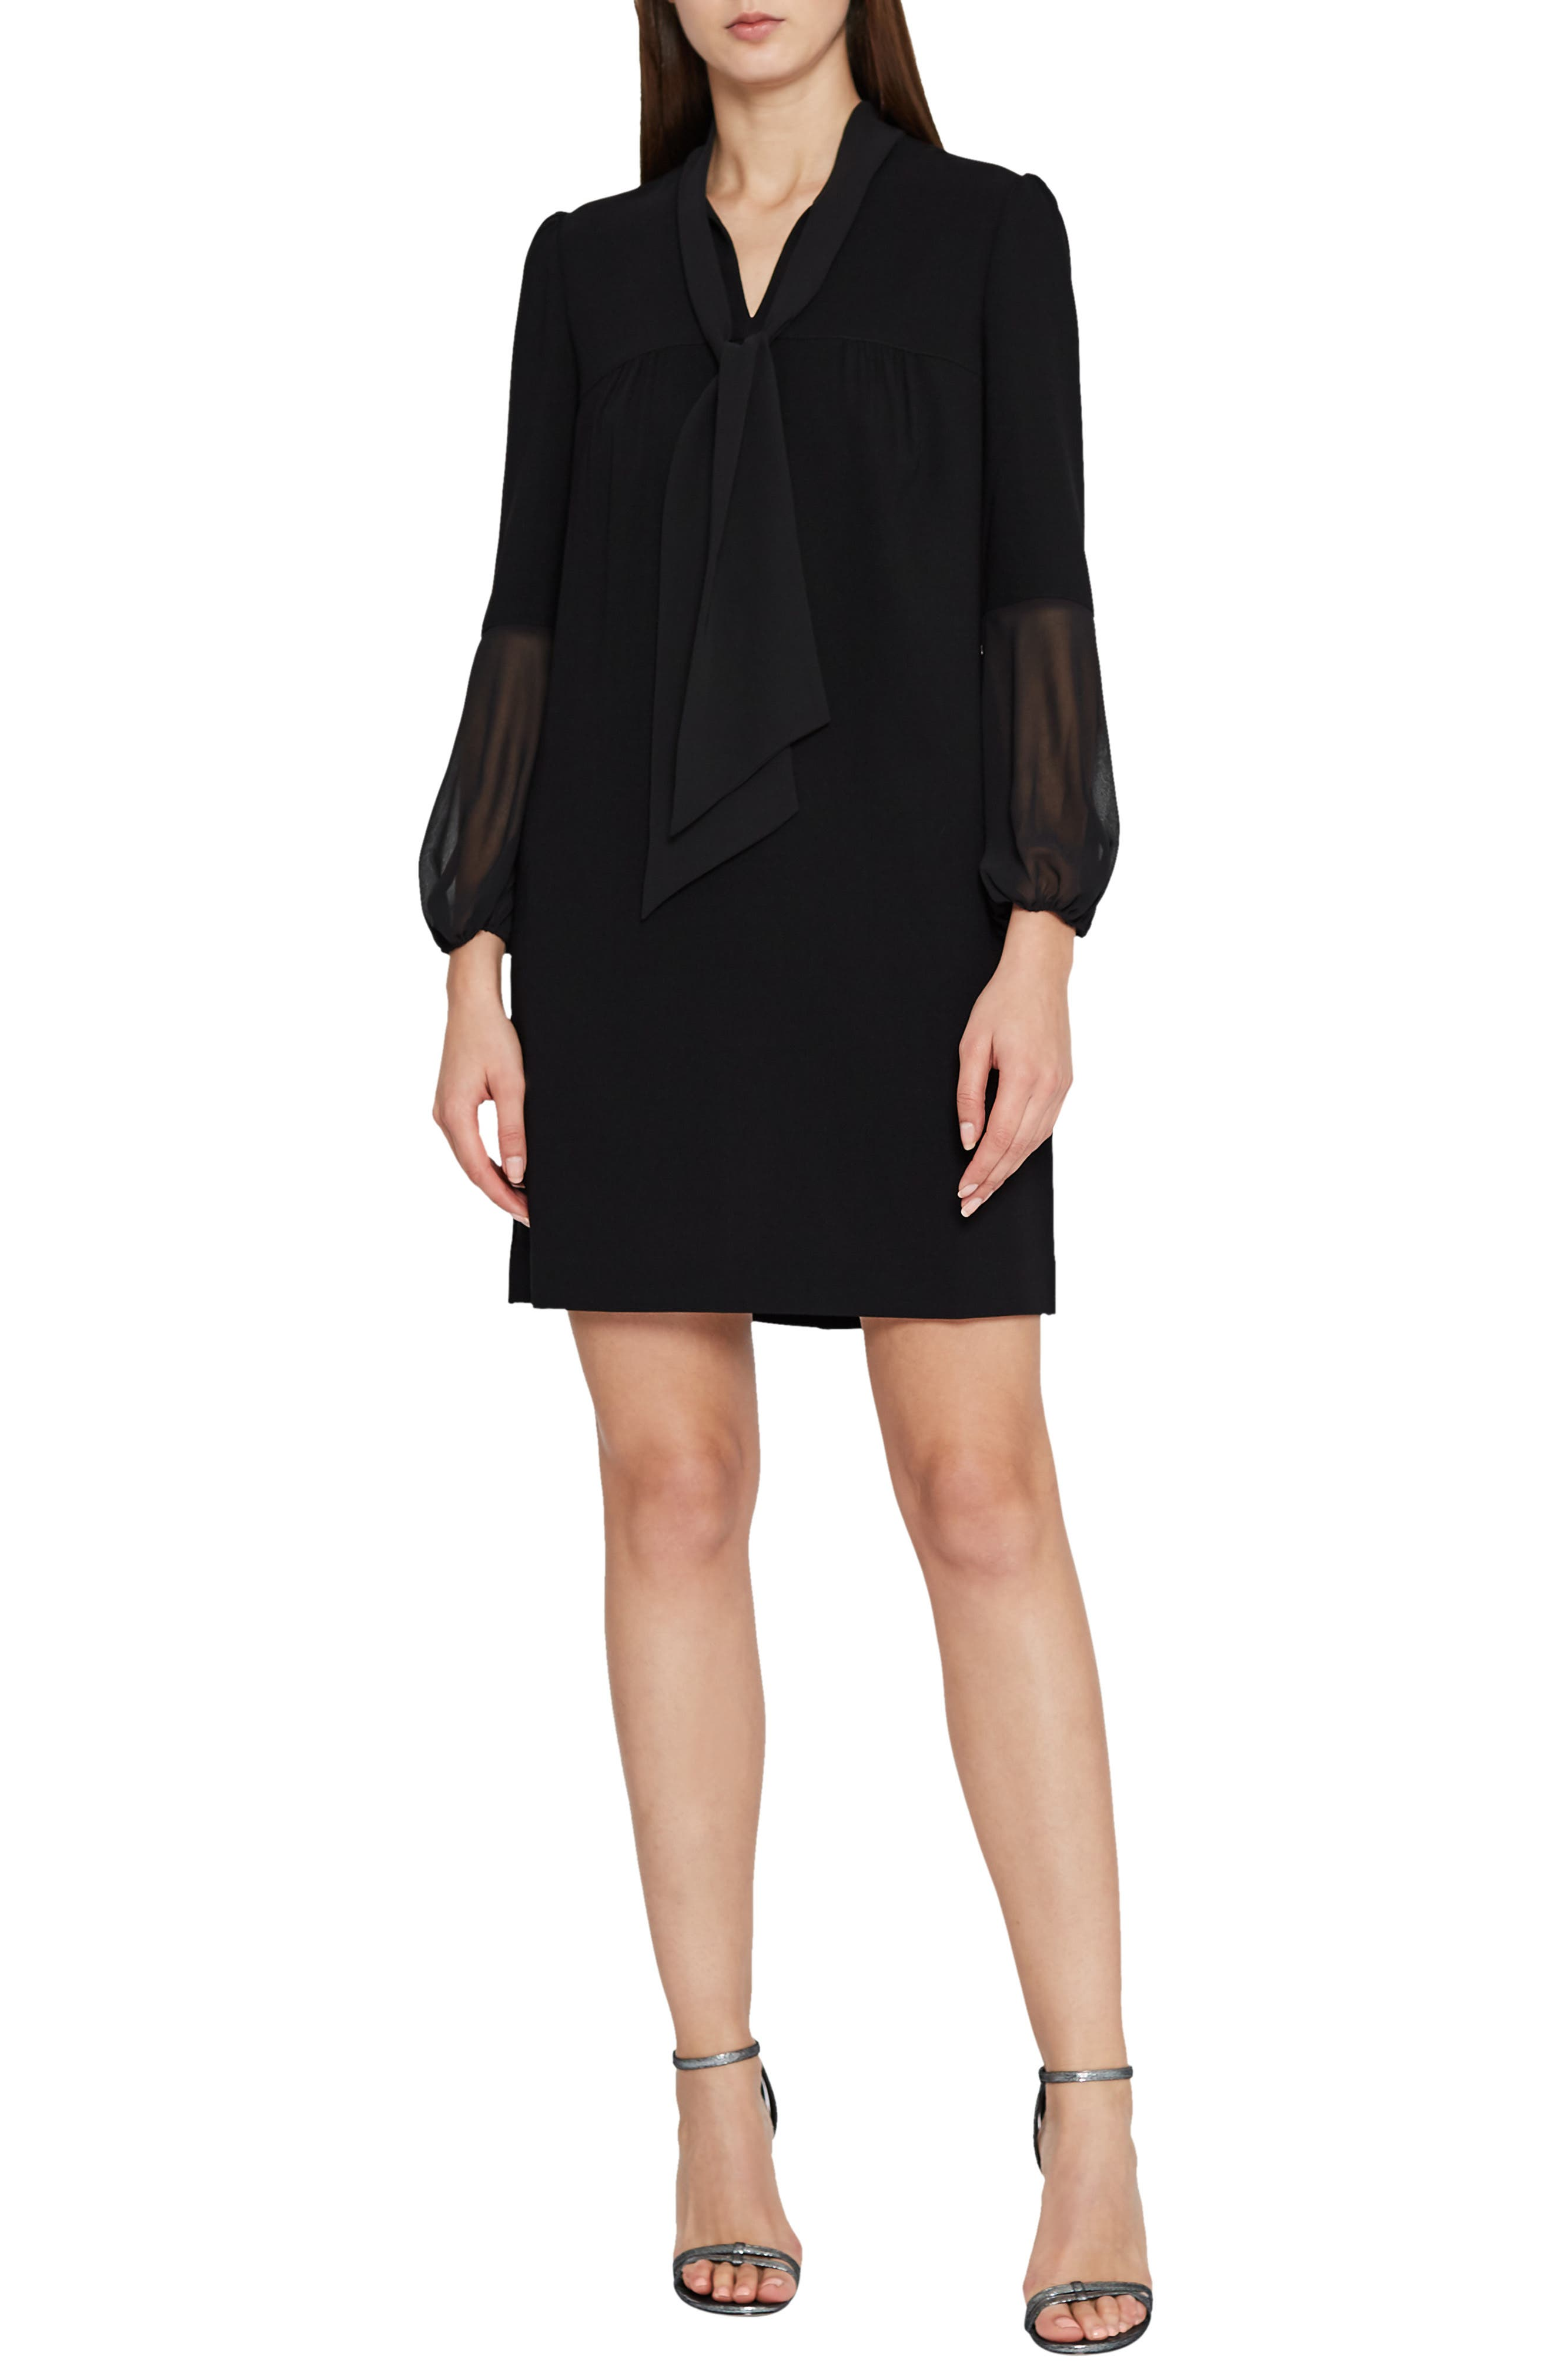 REISS Ronda Tie Neck Shift Dress in Black